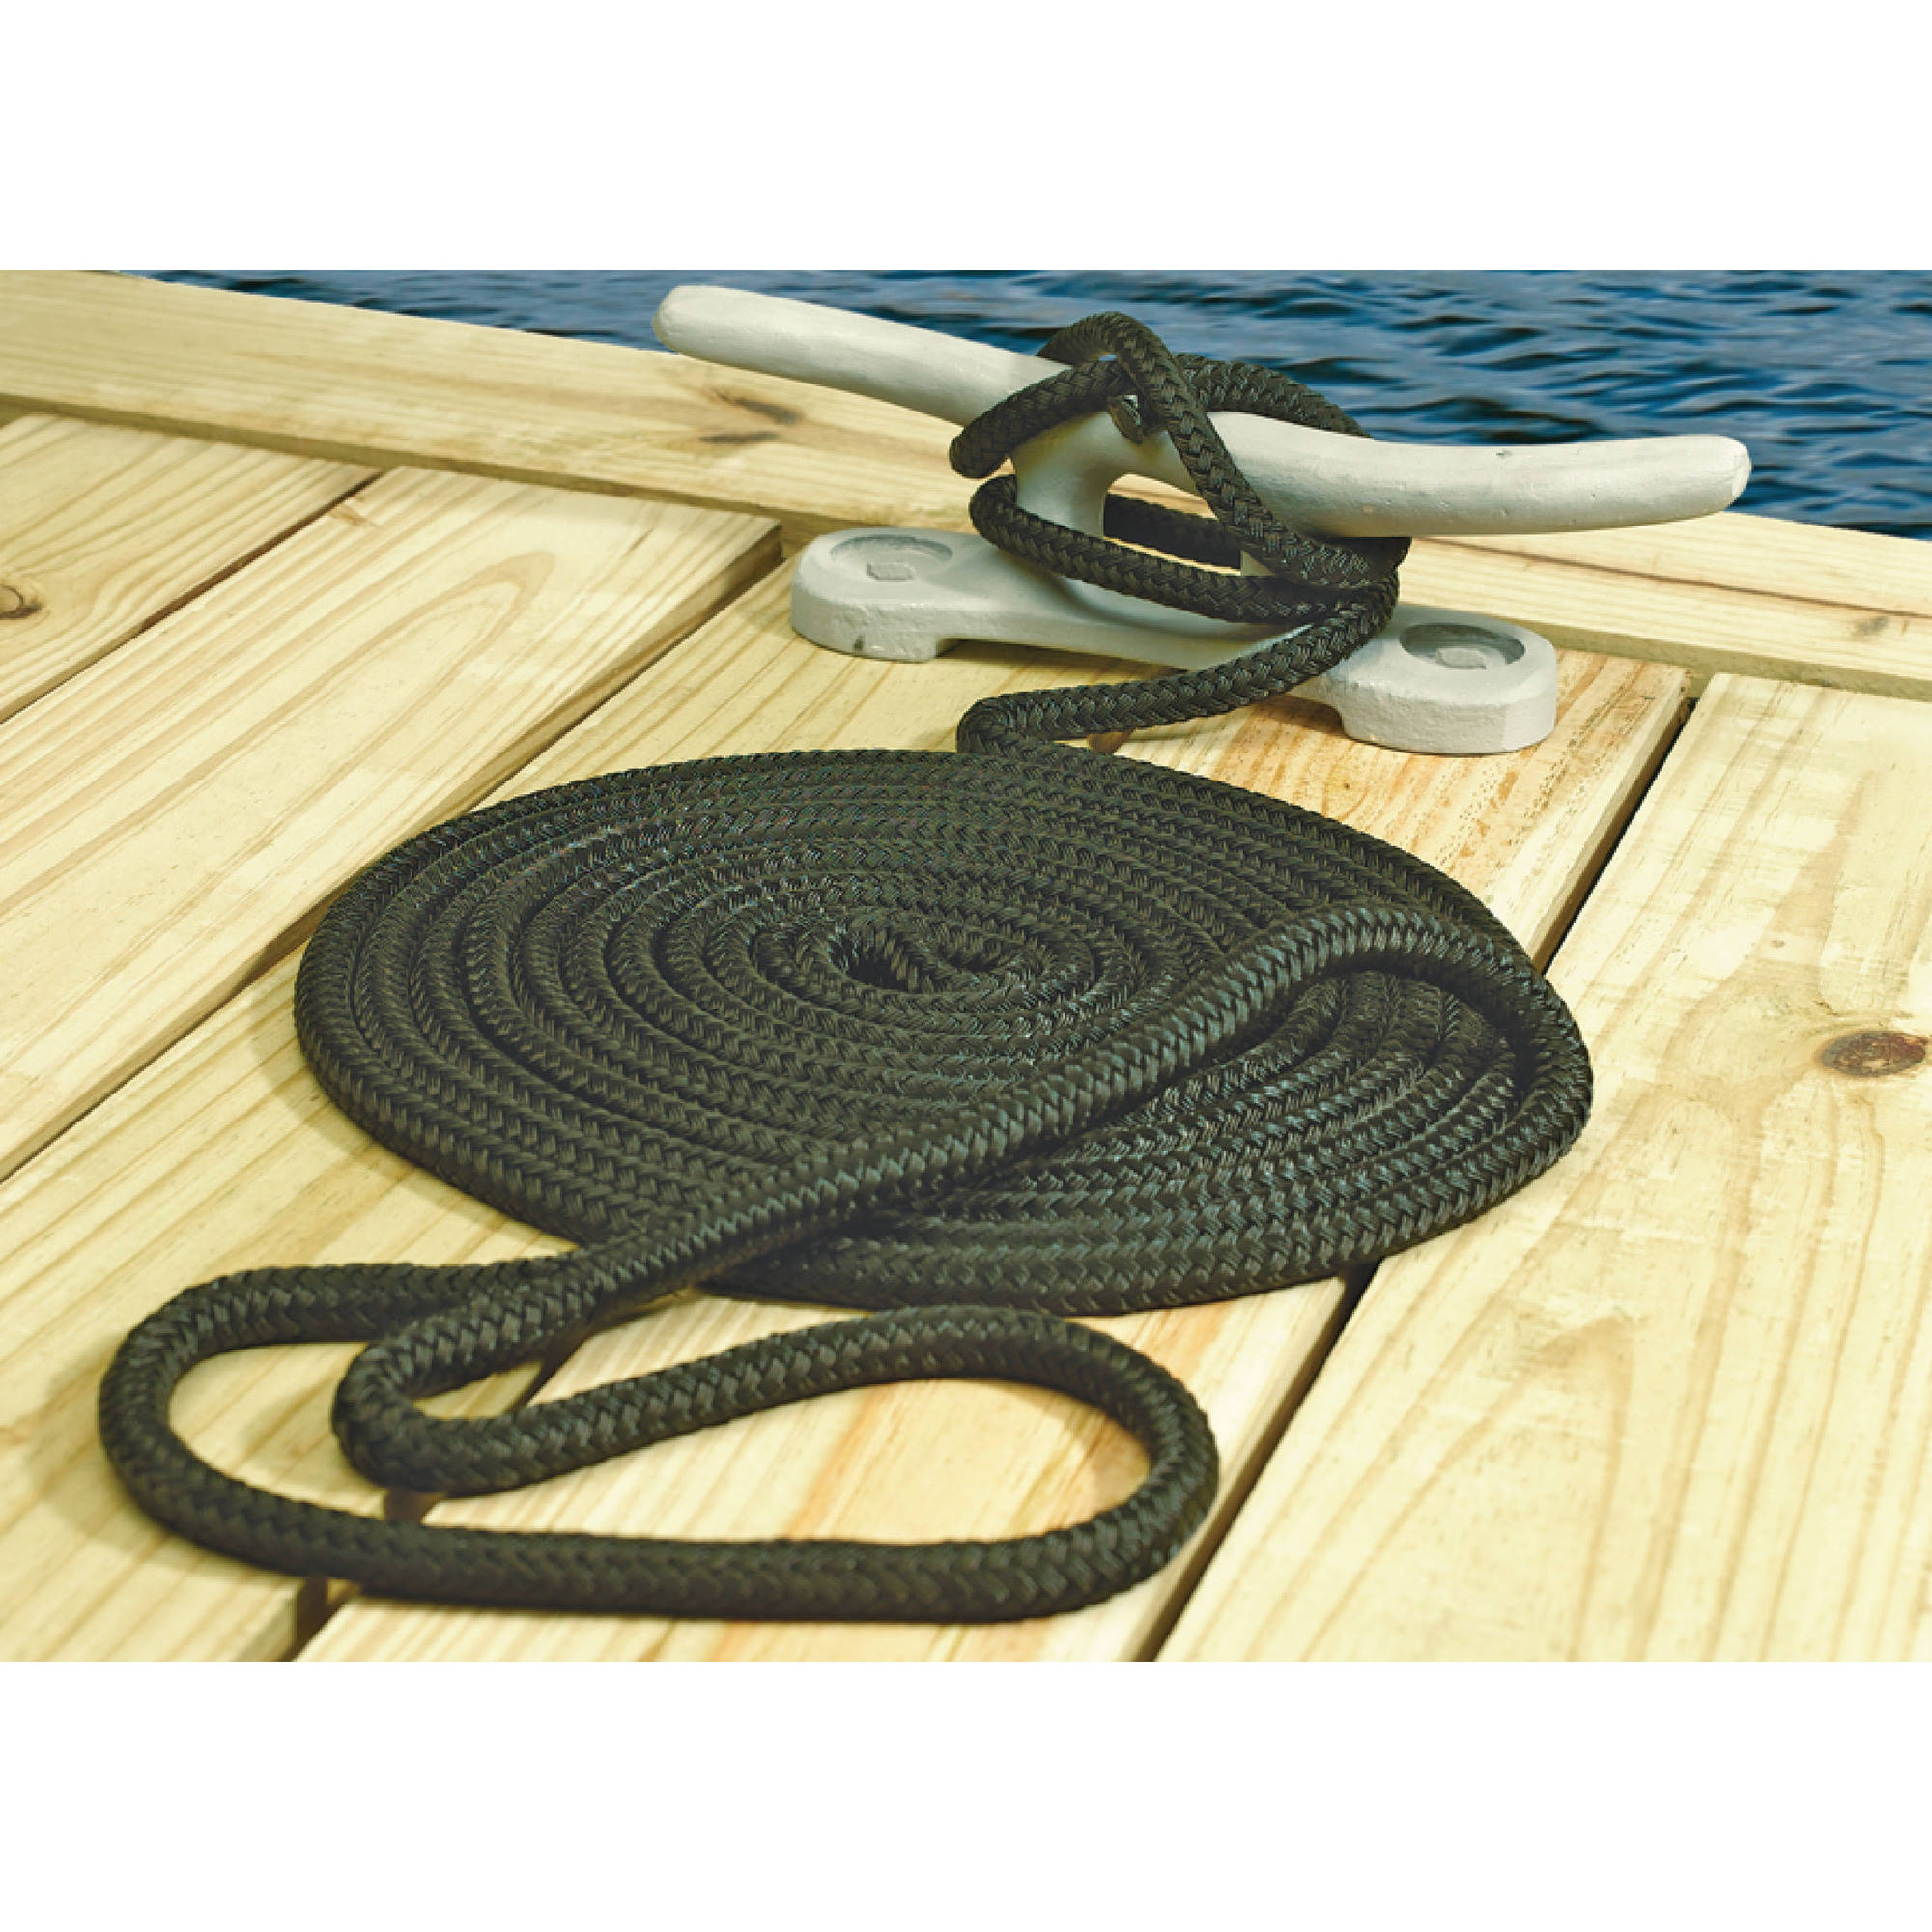 "Seachoice Double Braided Nylon Dock Line, 5/8"" x 20', Navy"